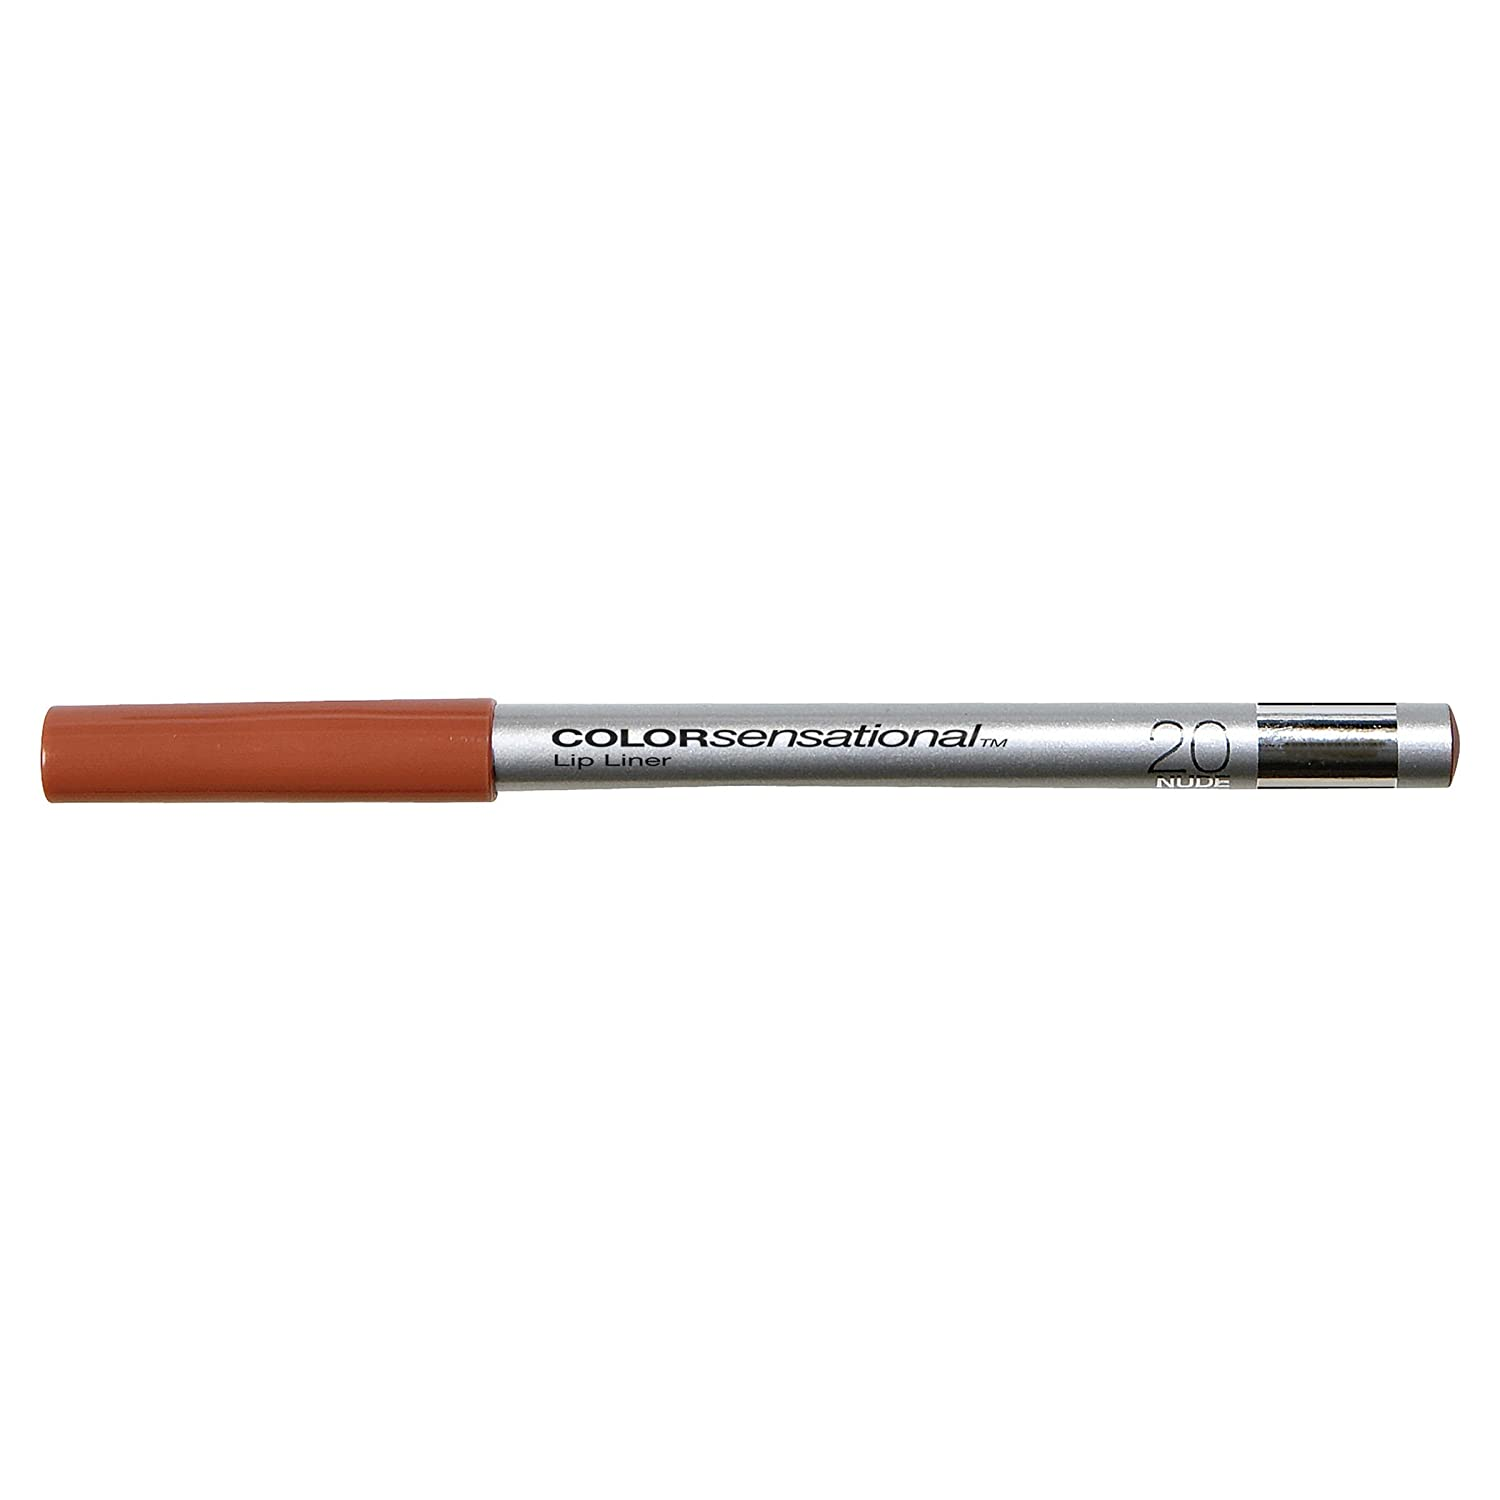 Maybelline New York ColorSensational Lip Liner, Nude 20, 0.04 Ounce K0214801